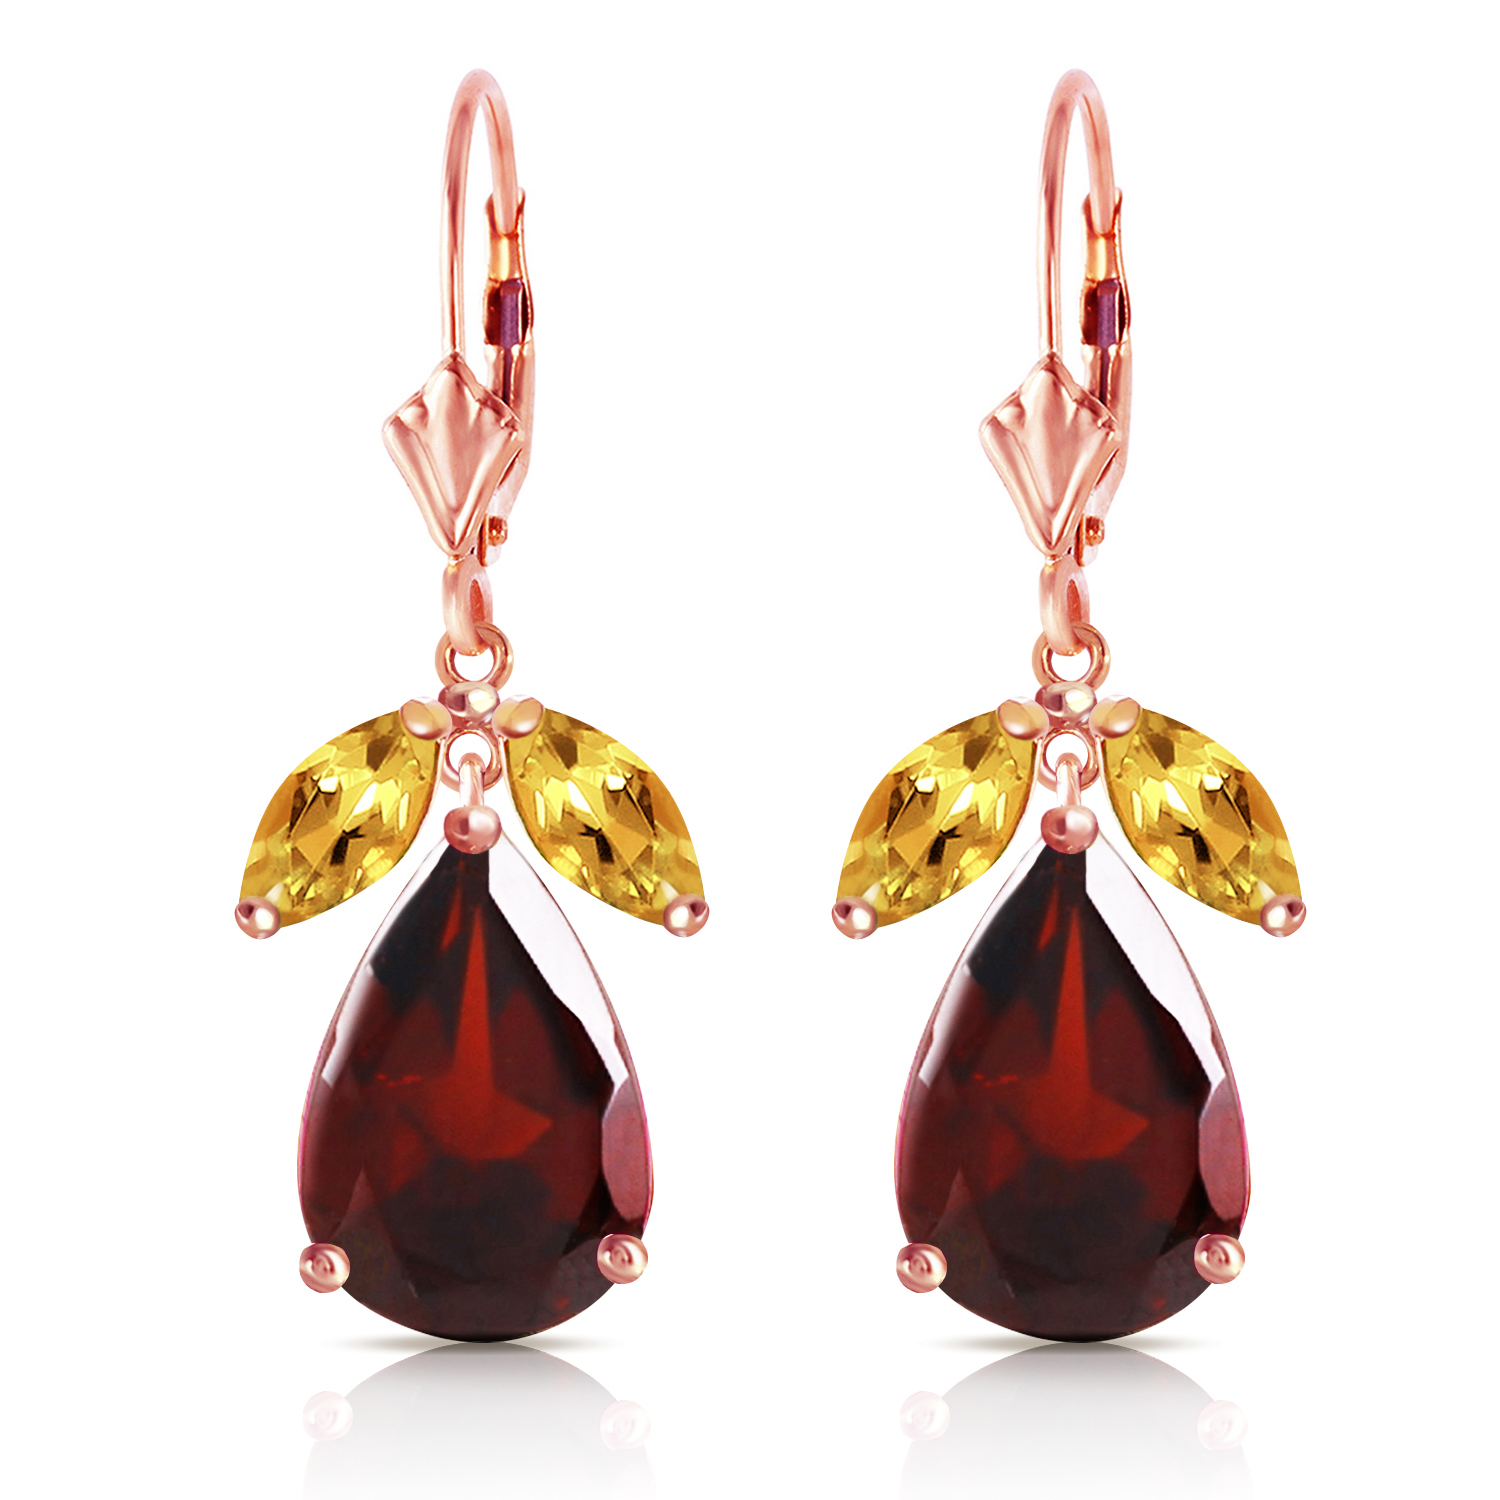 Primary image for 13 Carat 14K Solid Rose Gold Leverback Earrings Citrine Garnet